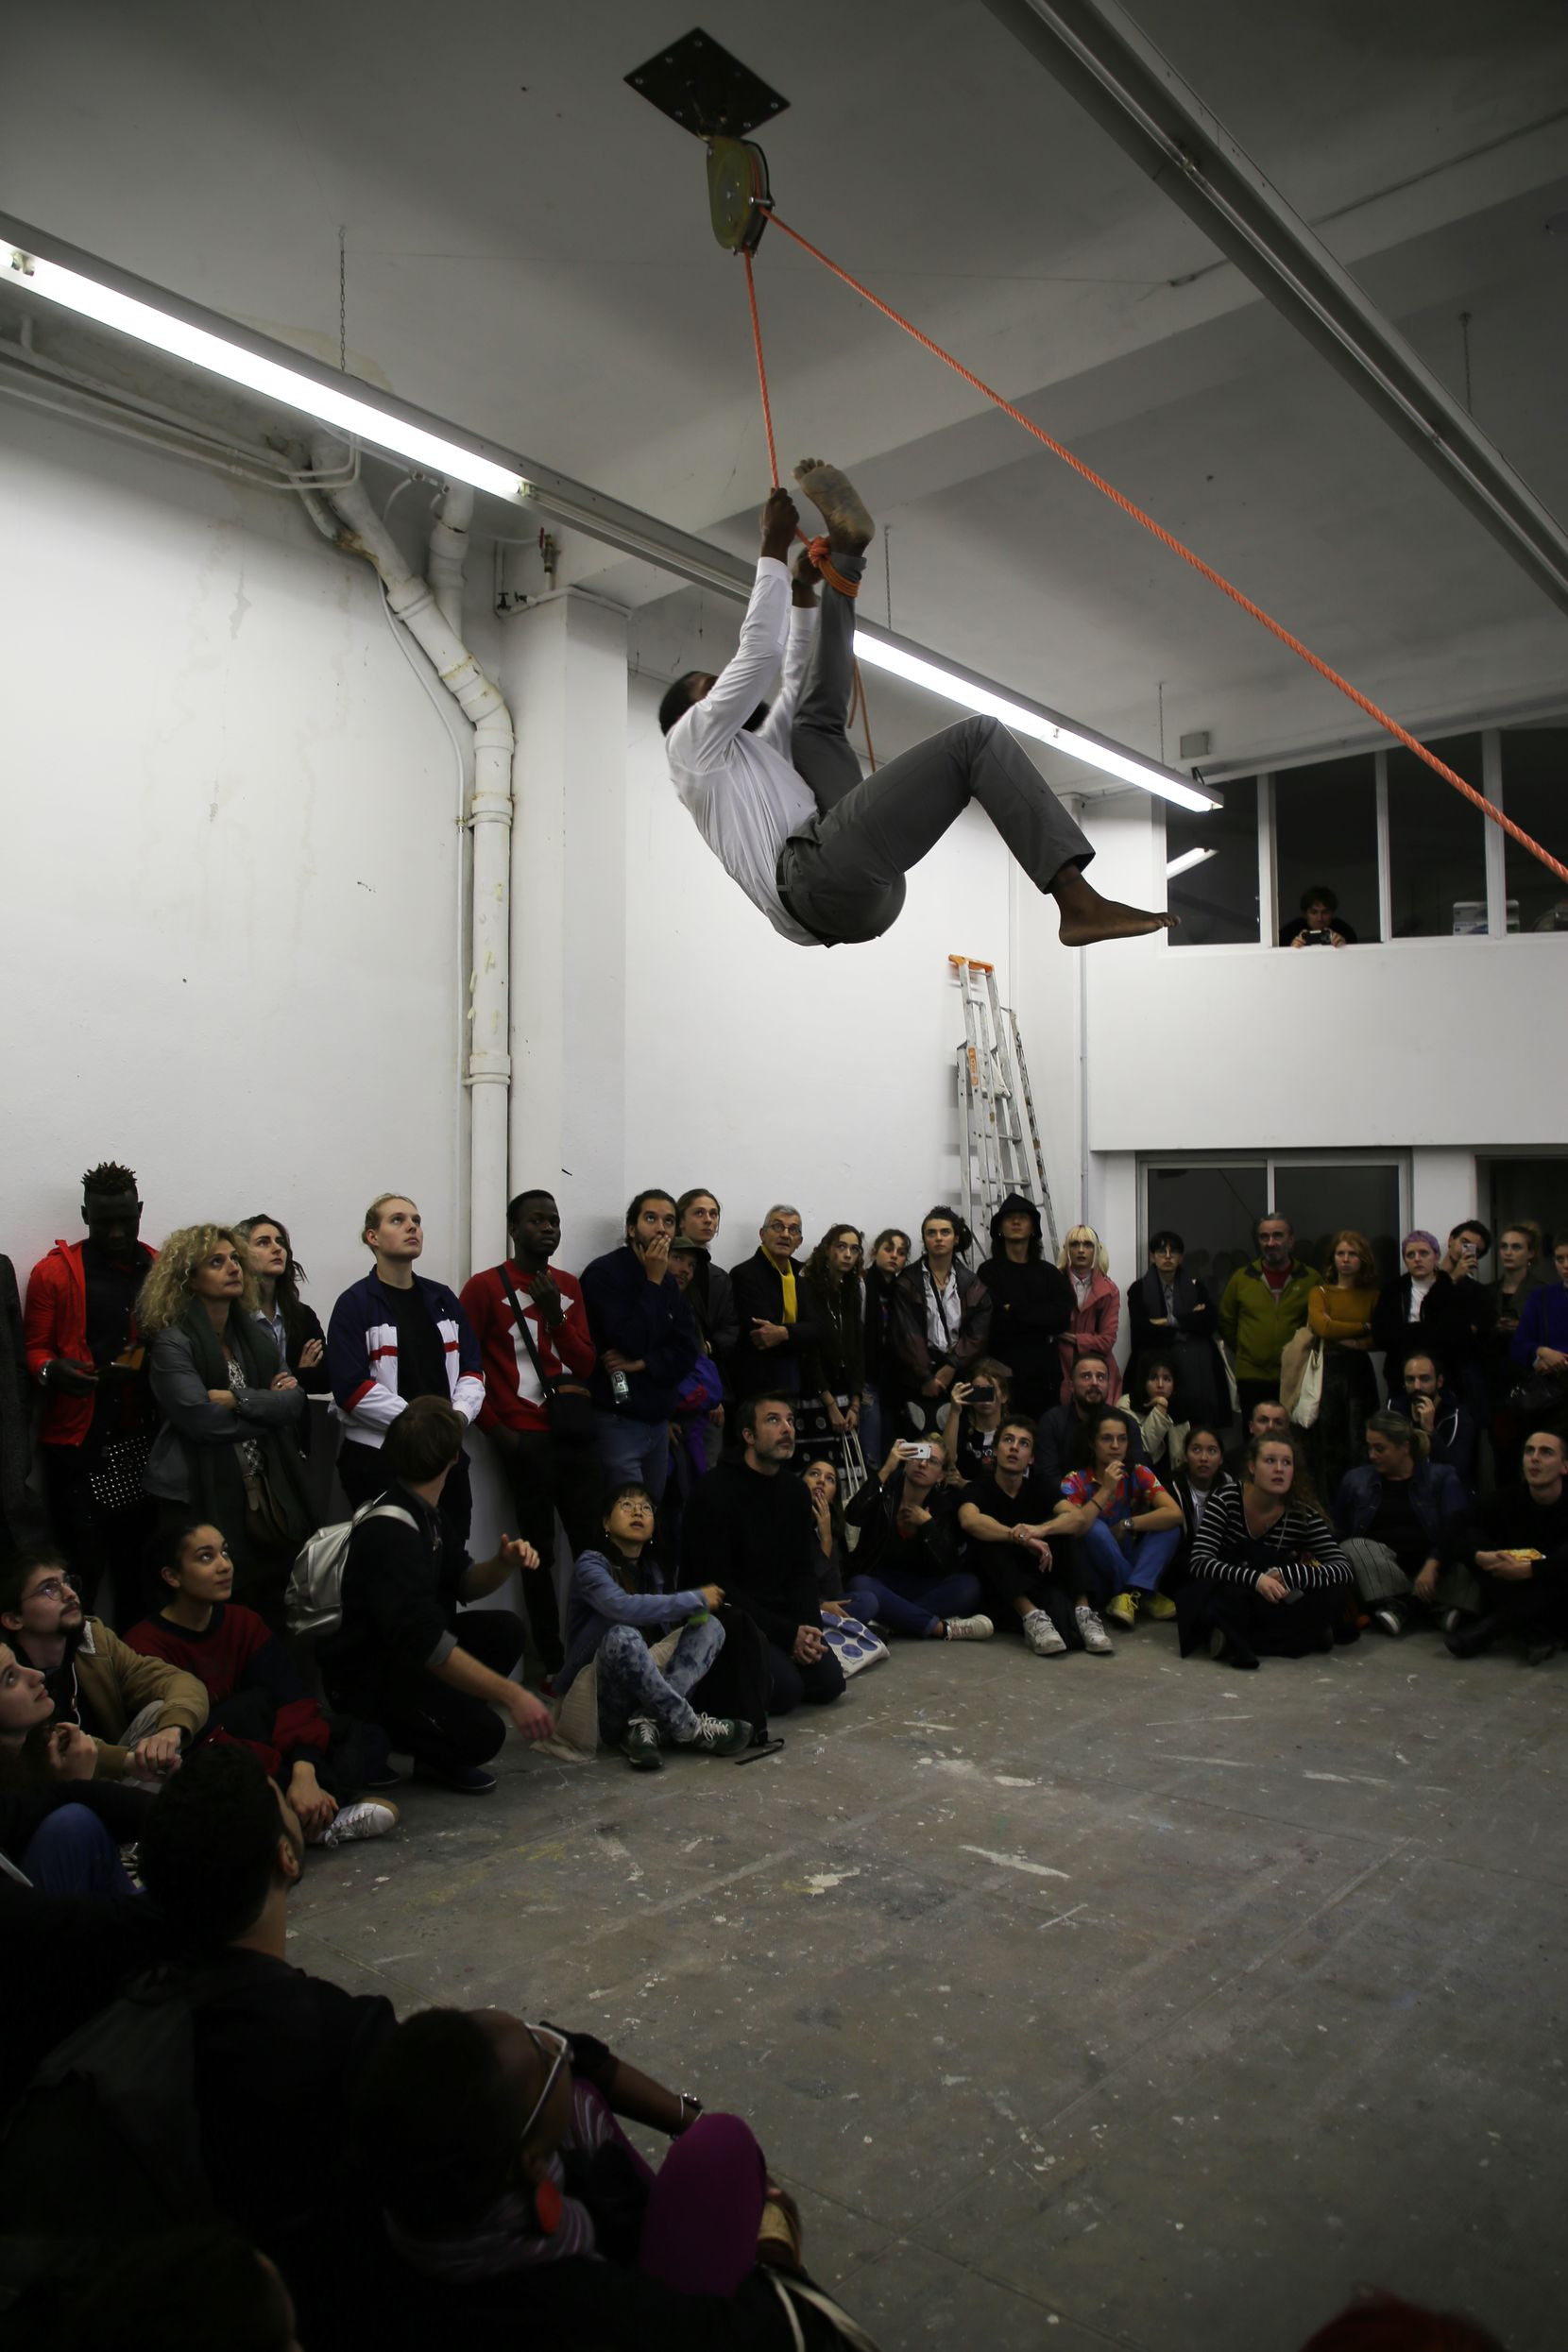 XXavier Carter doing a performance art piece, 'Tuez-Les Tous Performance,' during a show in France in 2019.